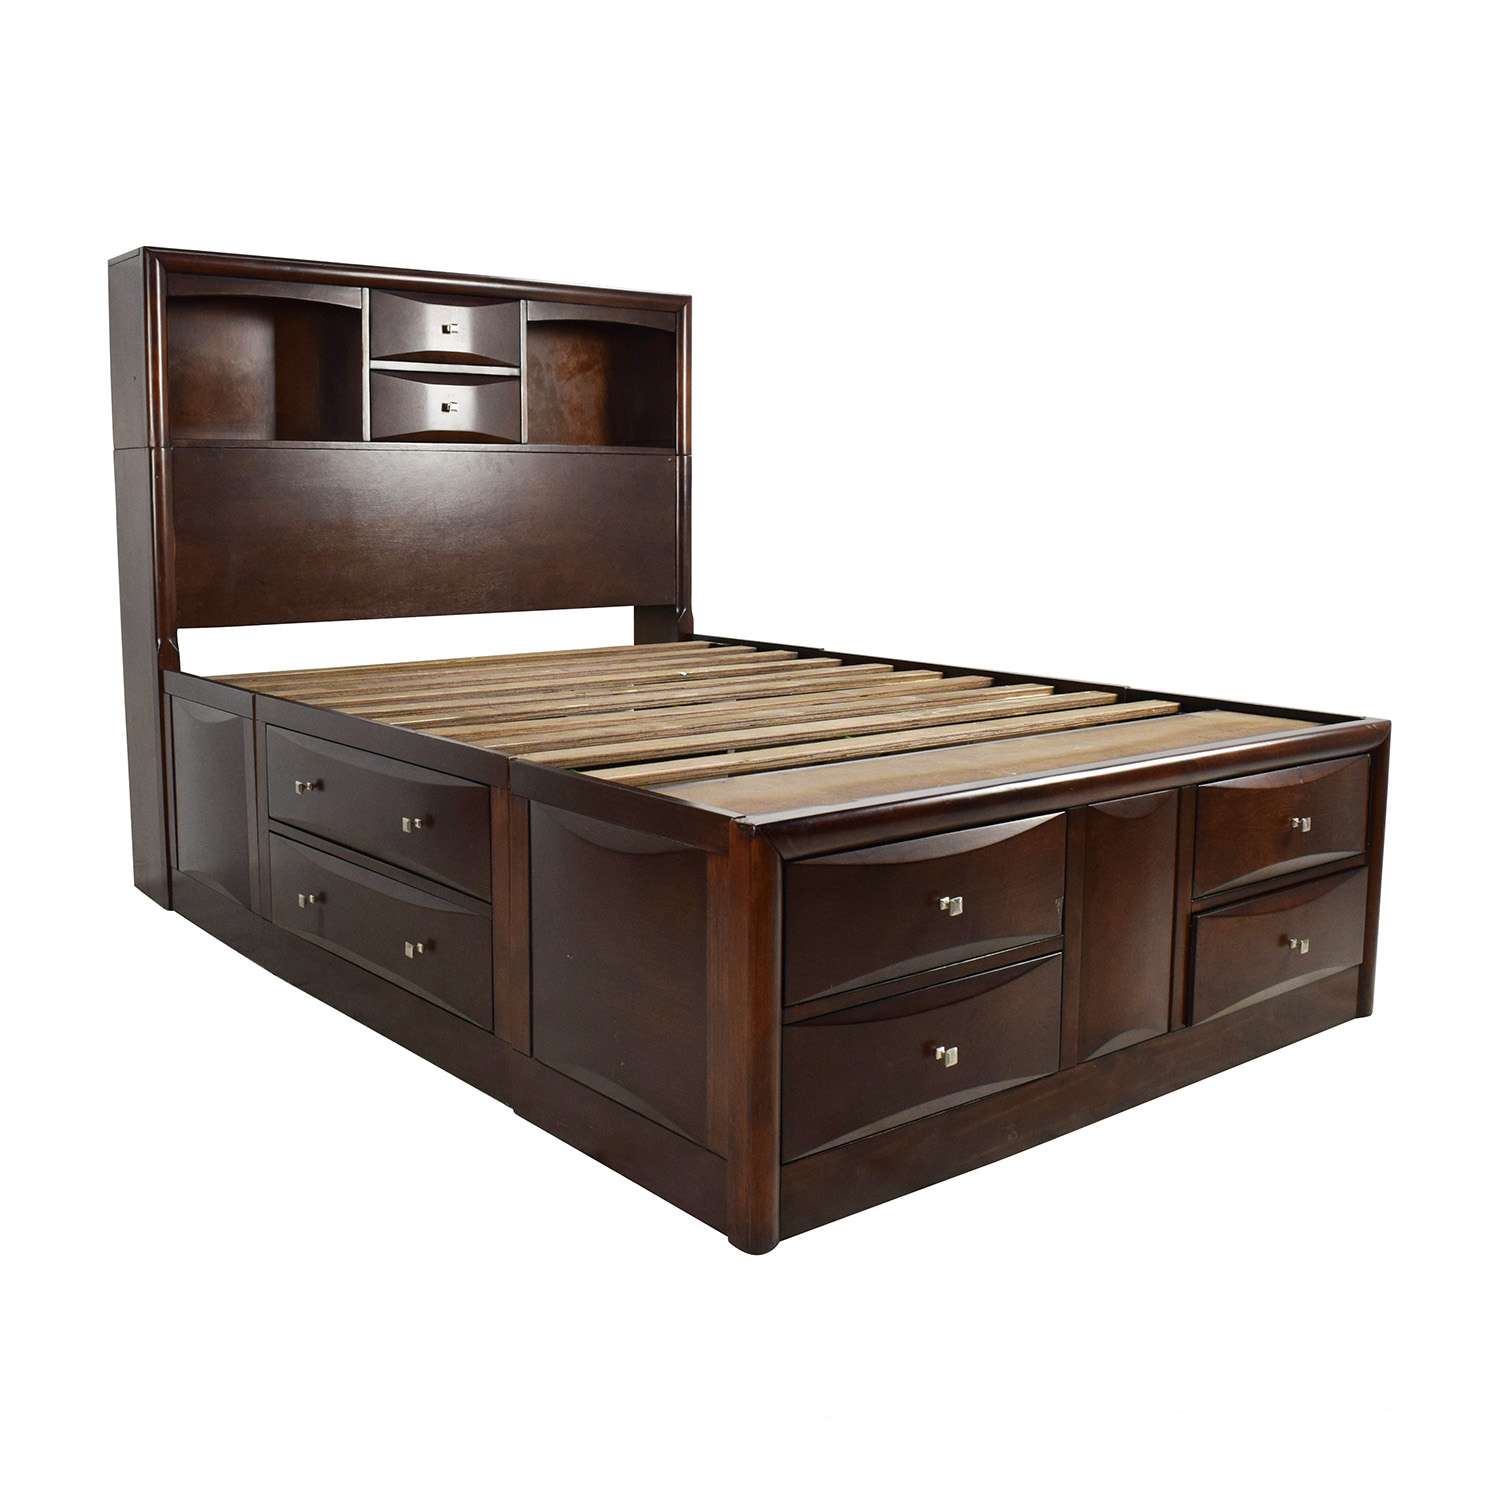 Second Hand Bedroom Suites For 56 Off Roundhill Furniture Roundhill Furniture Emily Wooden